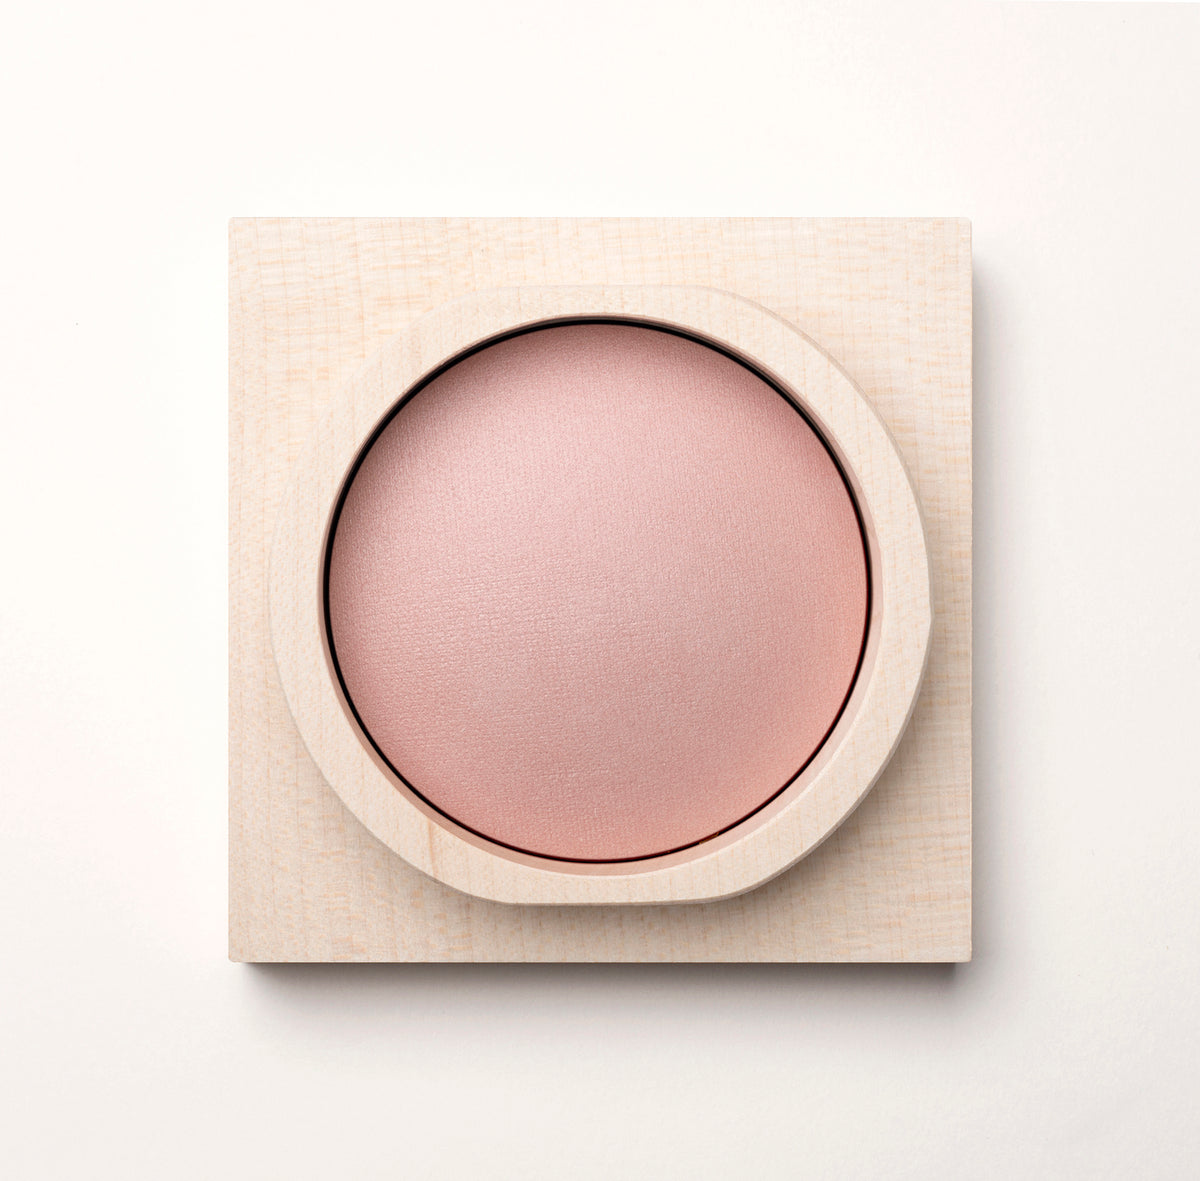 Kide Cosmetics Blushing Powder natural mineral makeup